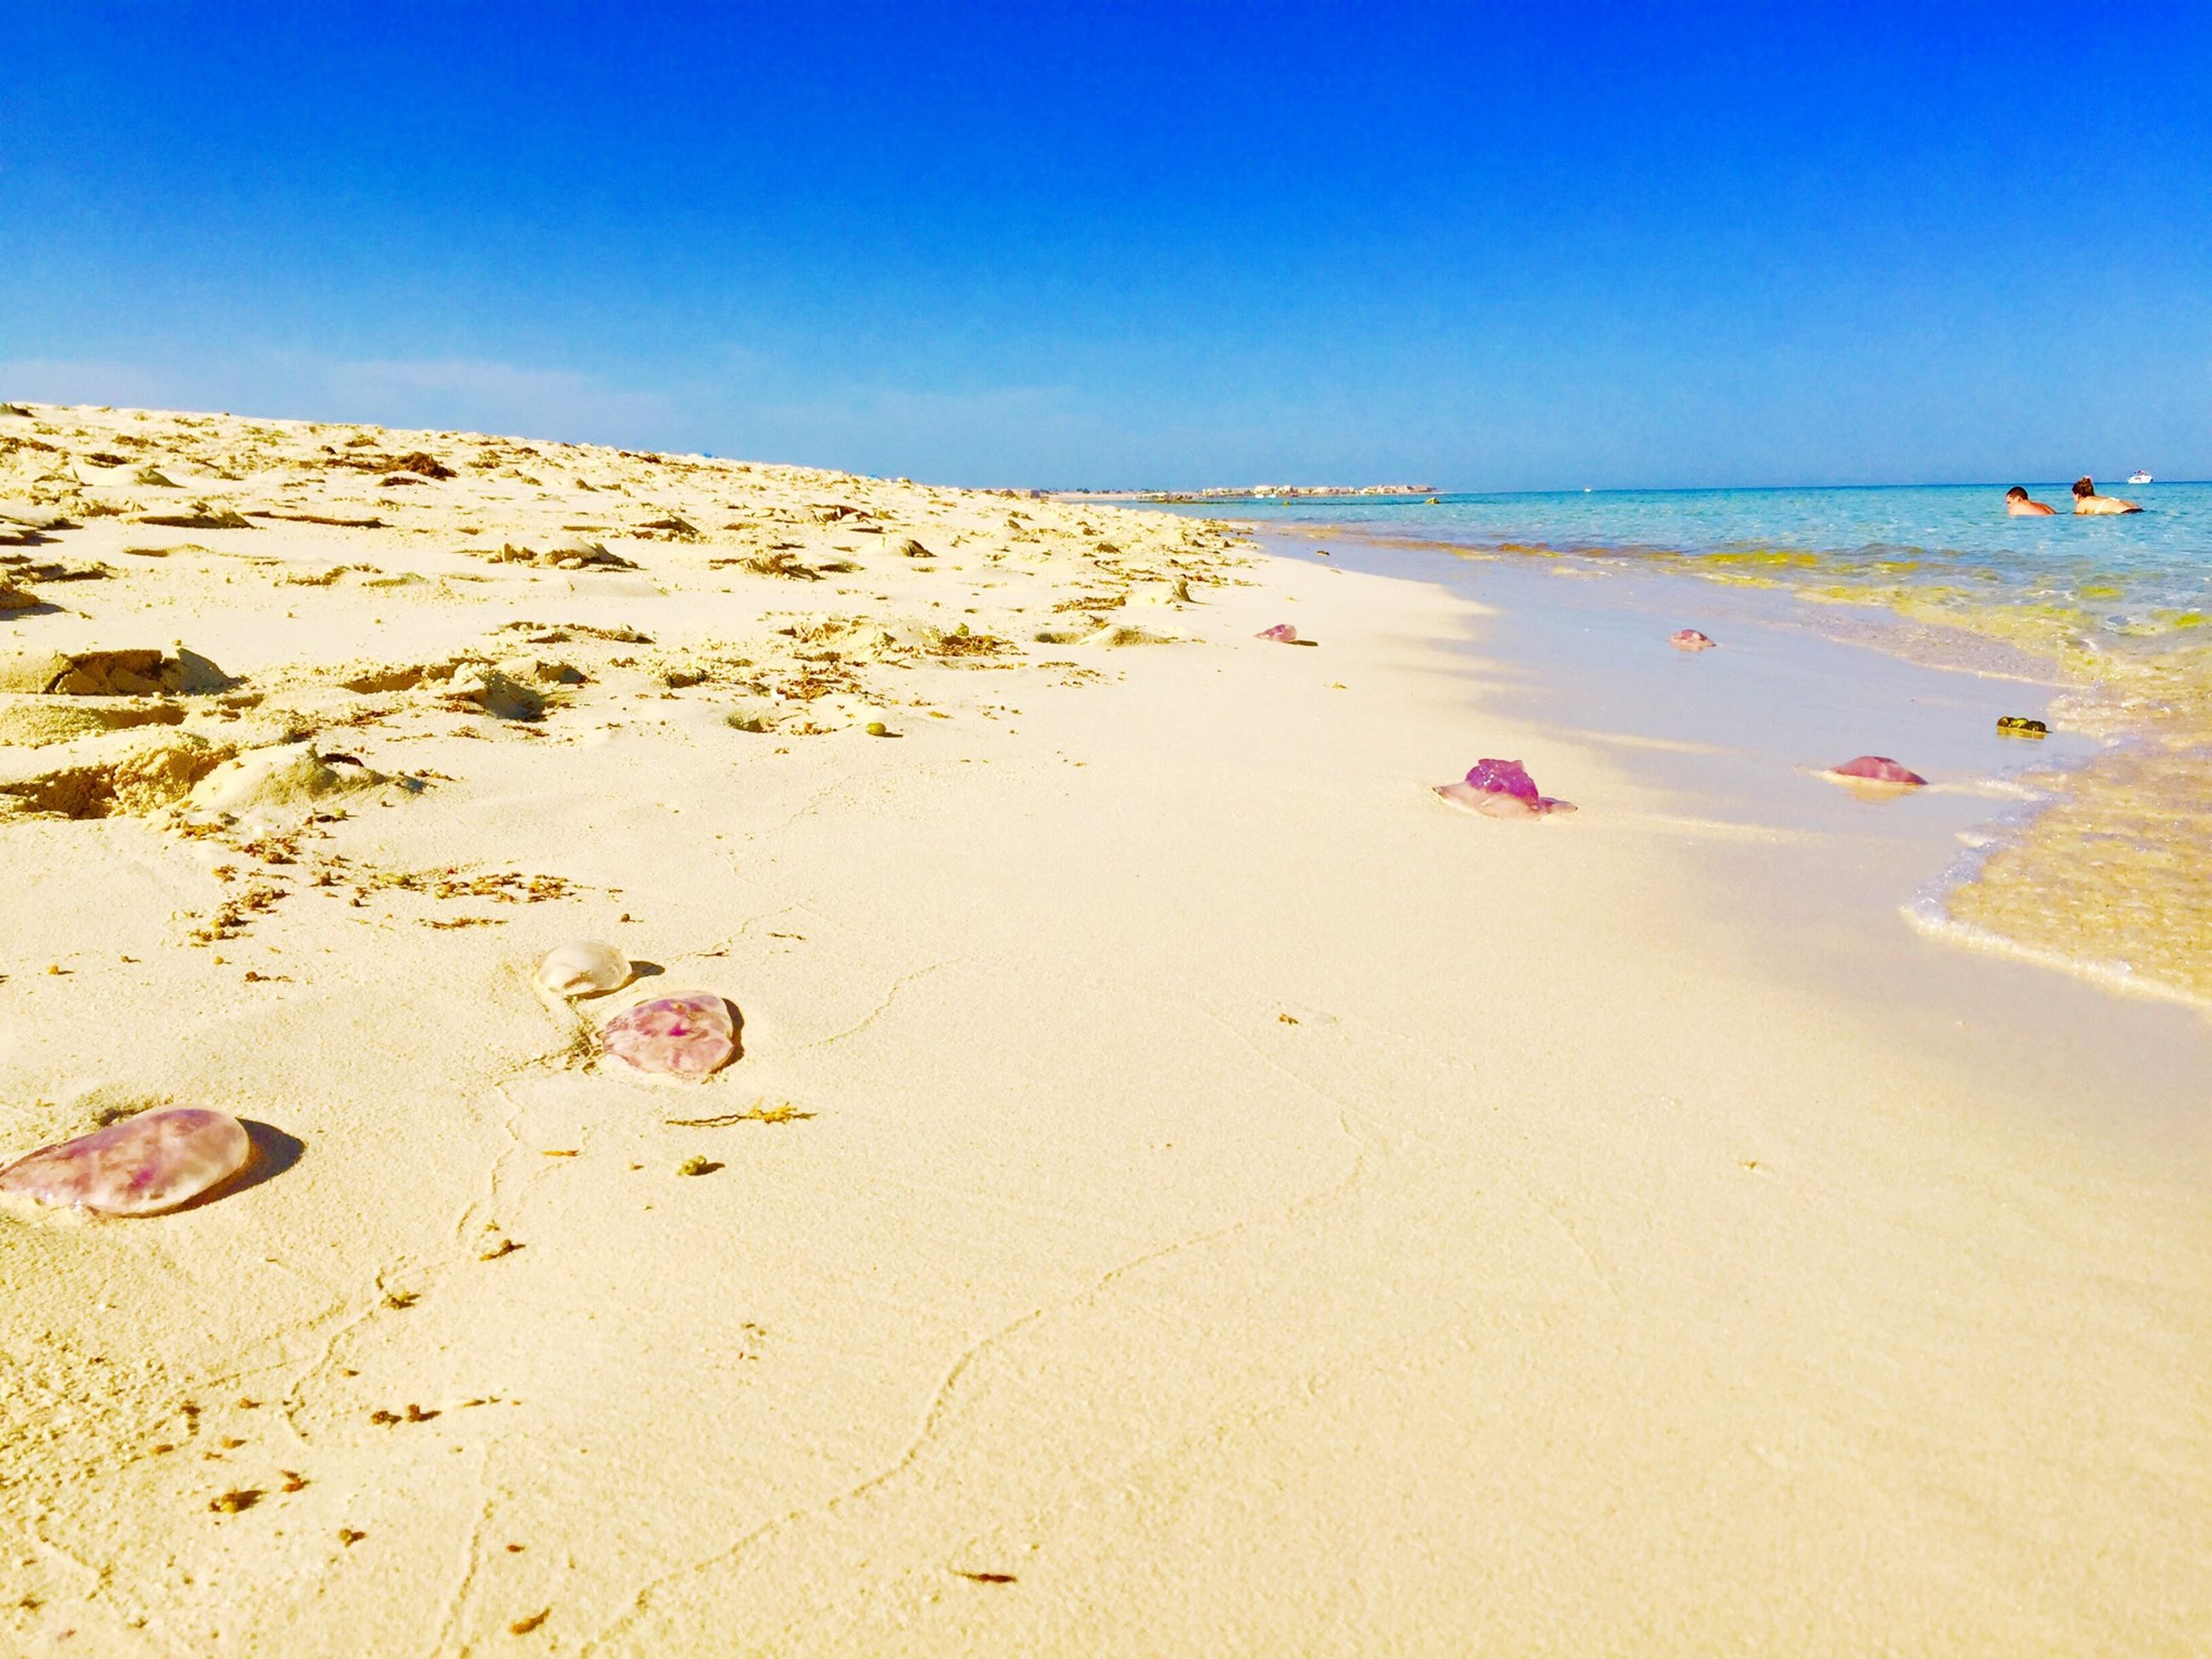 beach, clear sky, sand, sea, copy space, shore, blue, horizon over water, water, tranquility, tranquil scene, scenics, beauty in nature, coastline, nature, summer, sunlight, incidental people, vacations, footprint